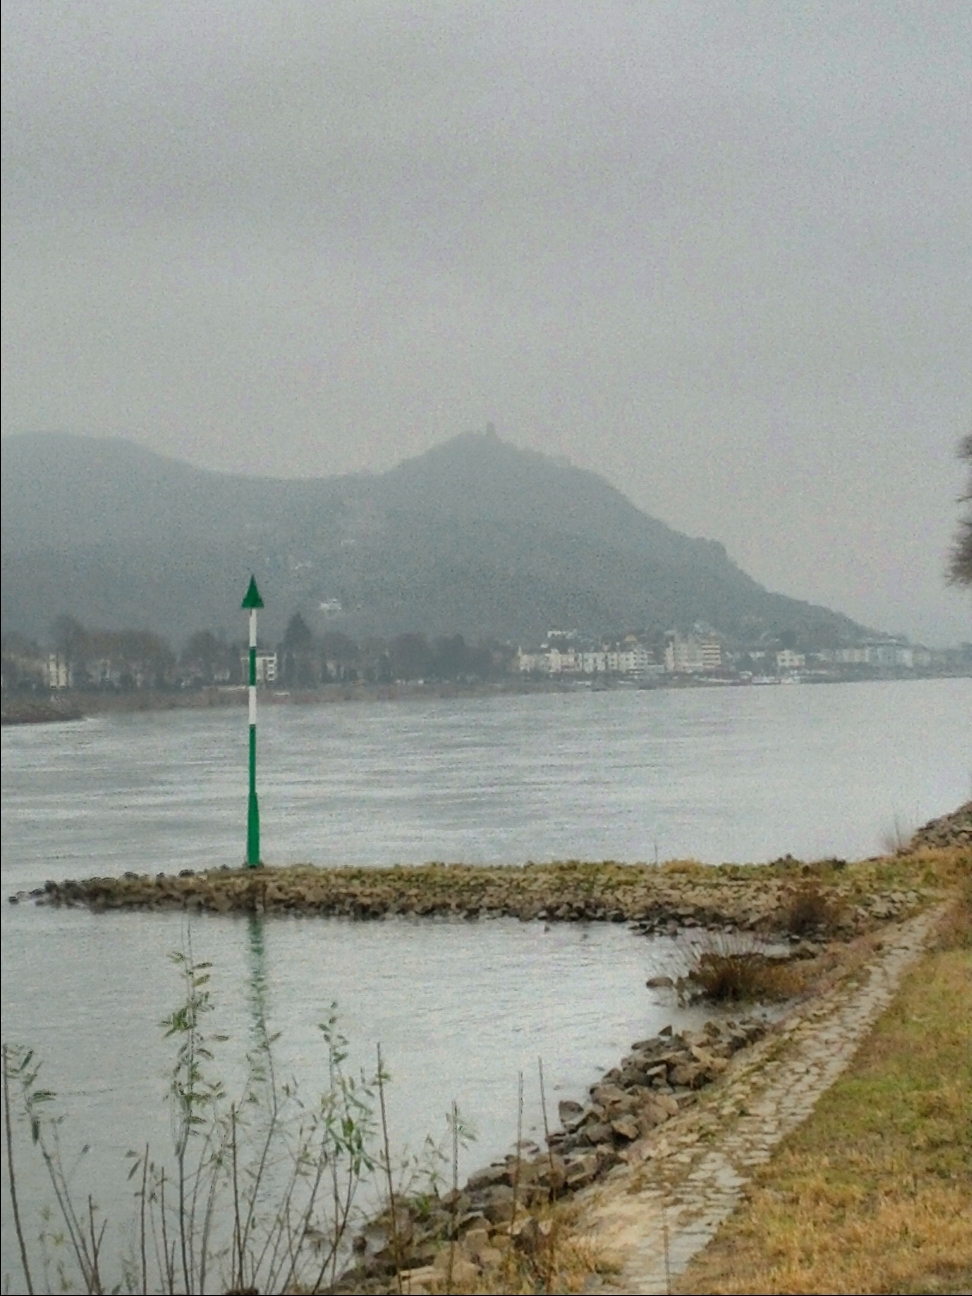 the river Rhine and the Drachenfels